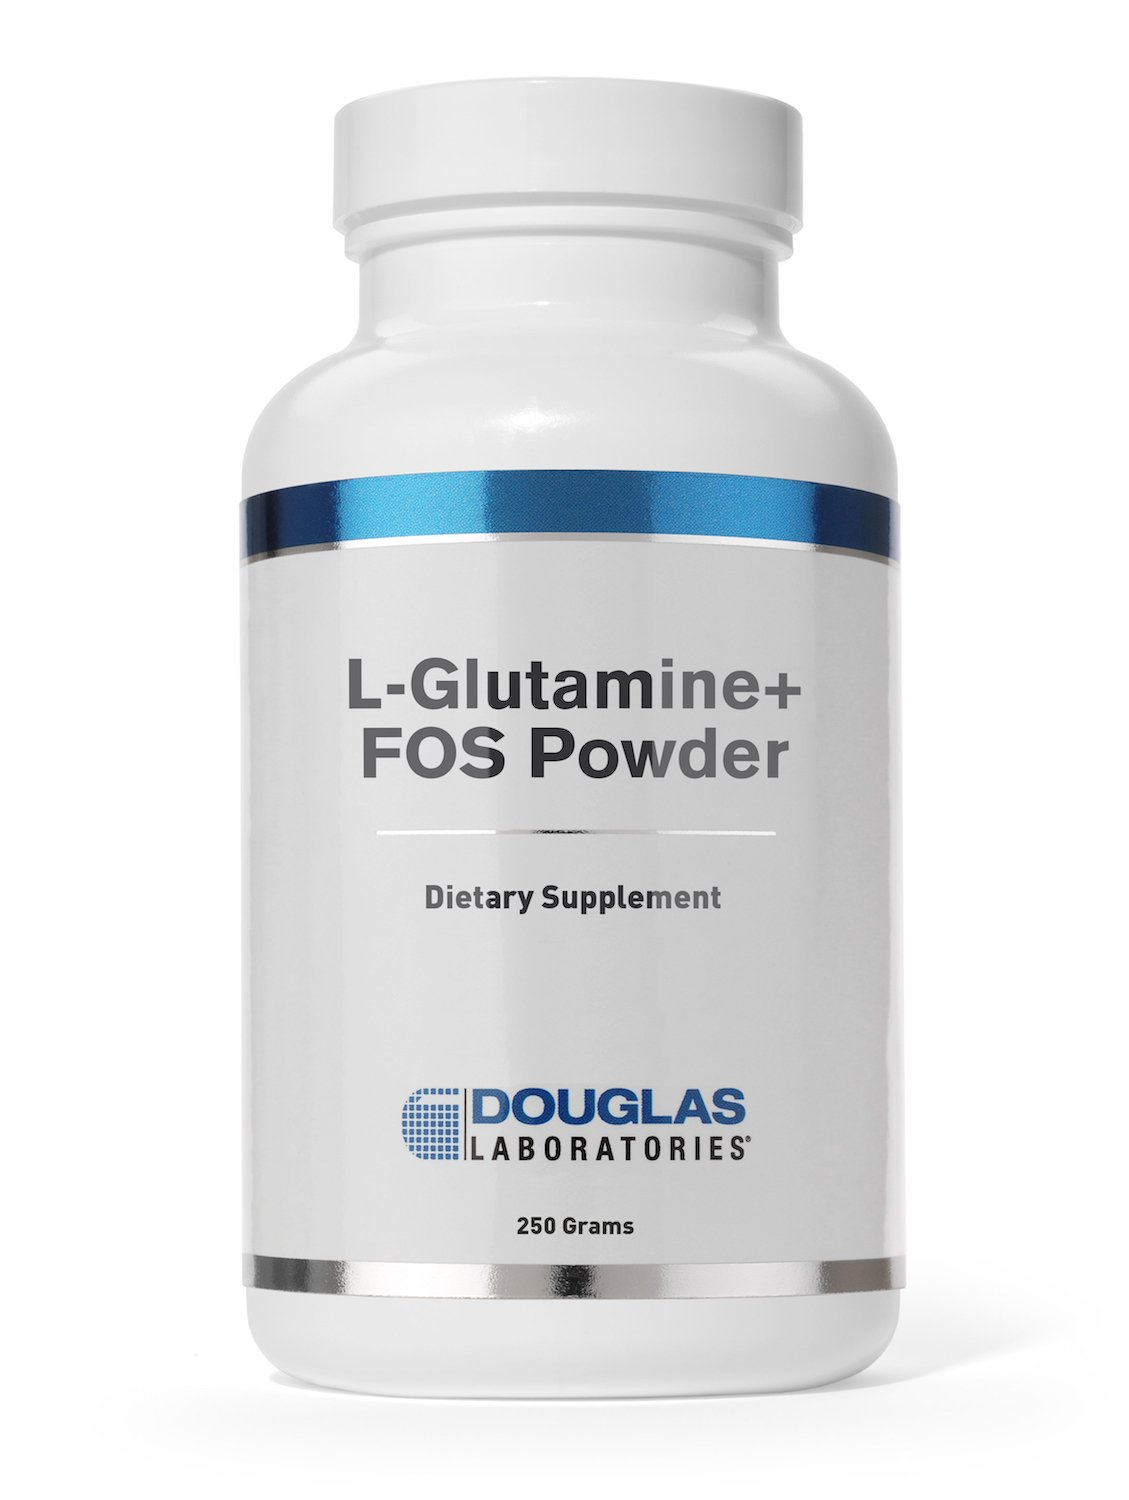 Douglas Laboratories - L-Glutamine + FOS Powder - Supports Structure and Function of the Gastrointestinal (GI) Tract and Immune System* - 250 Grams